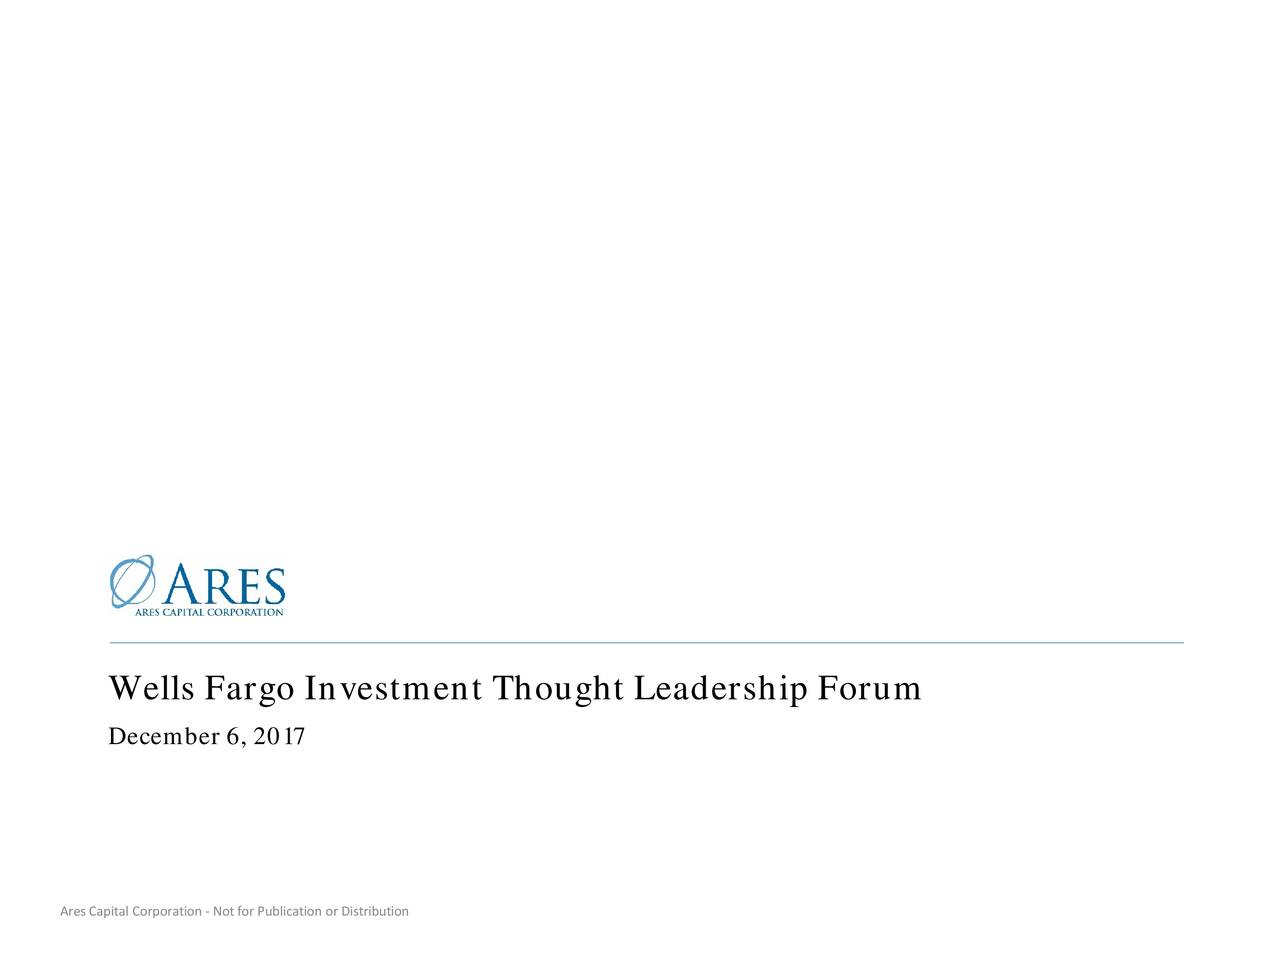 Wells Fargo Investment Thought Leadership Forum